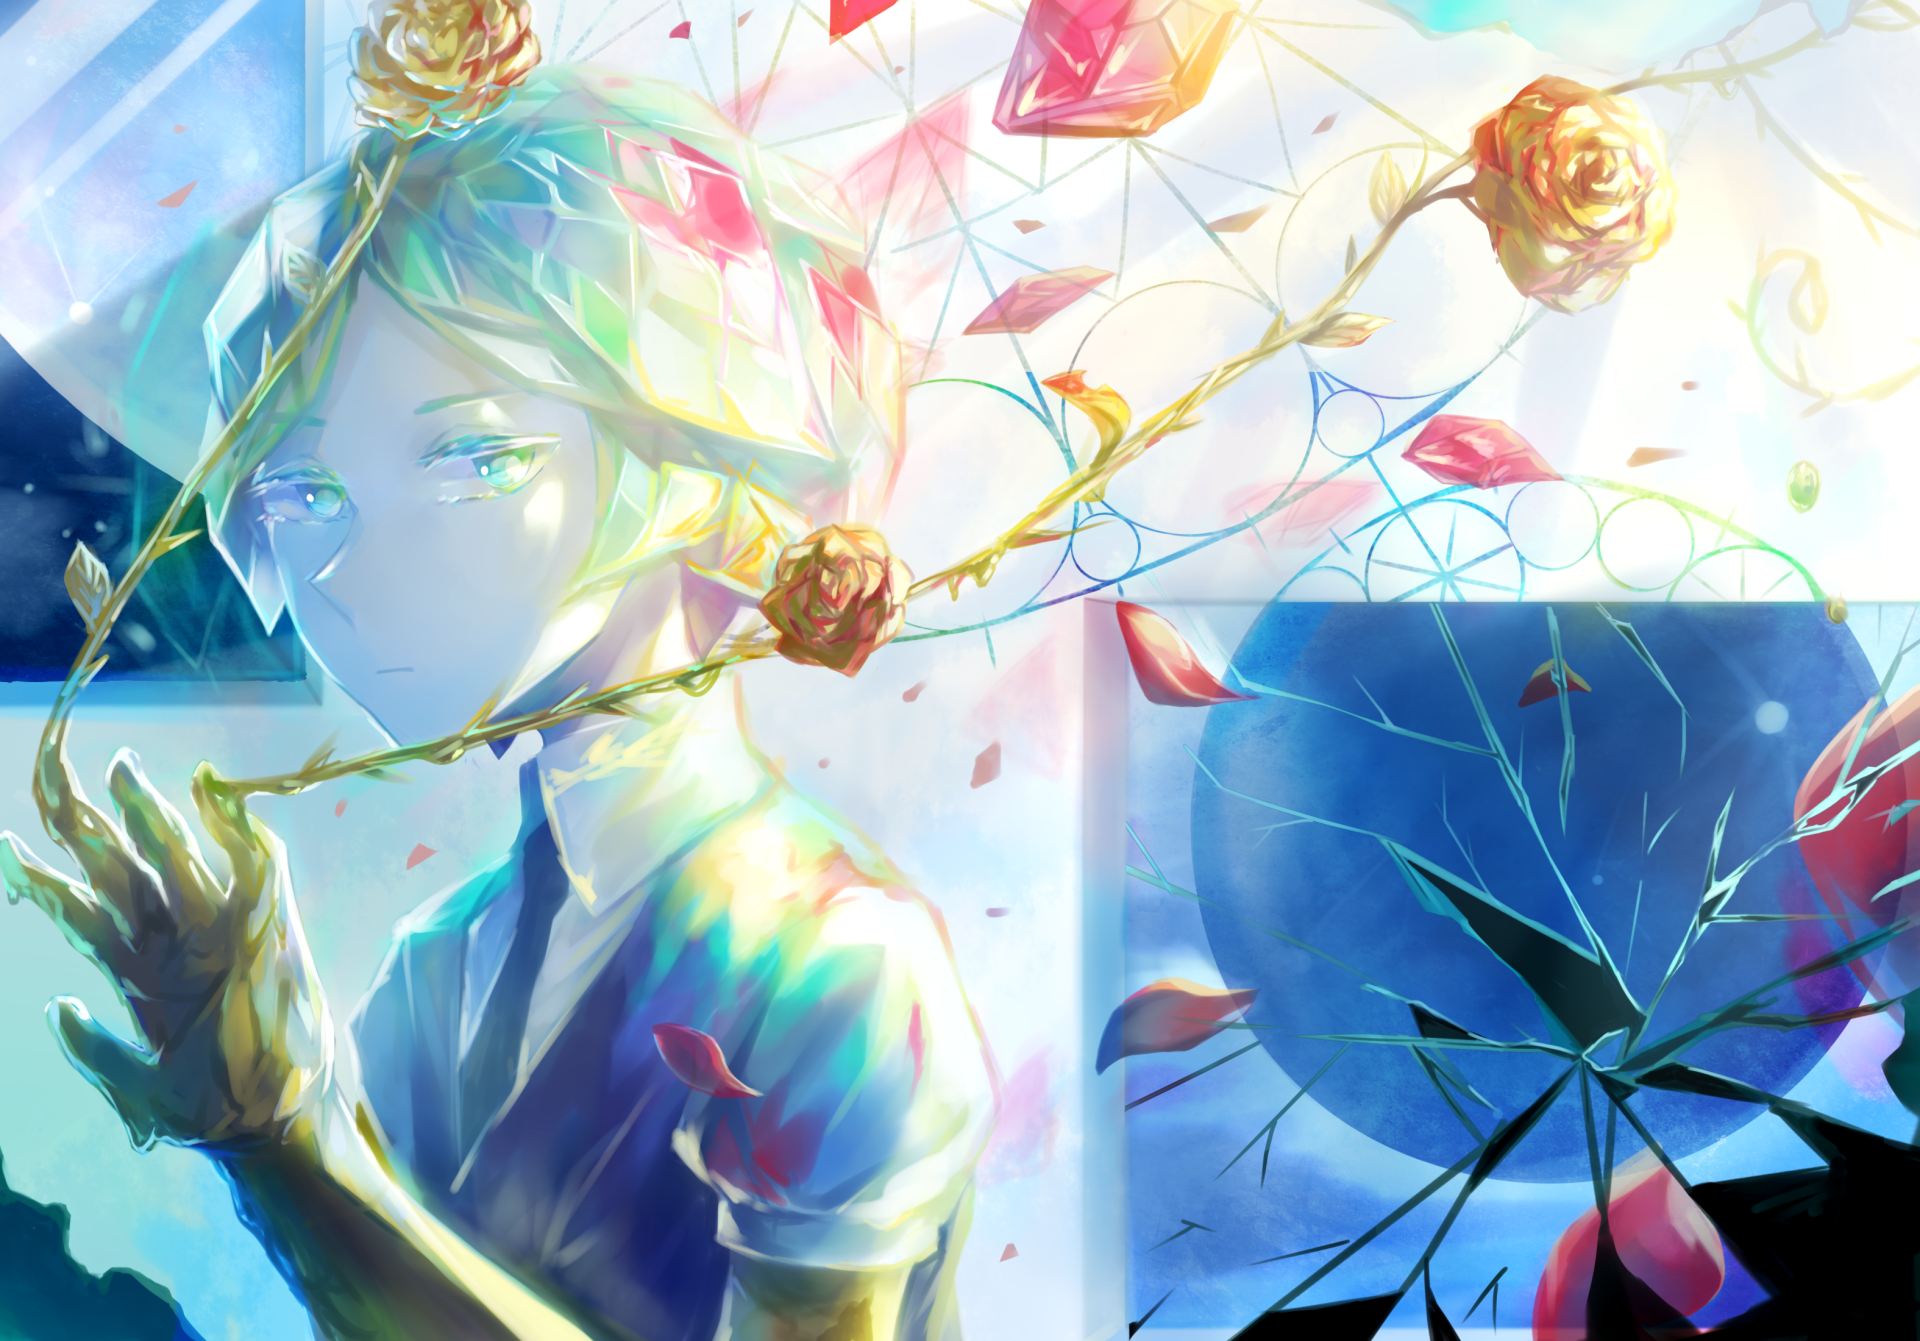 438 Houseki No Kuni Hd Wallpapers Background Images Wallpaper